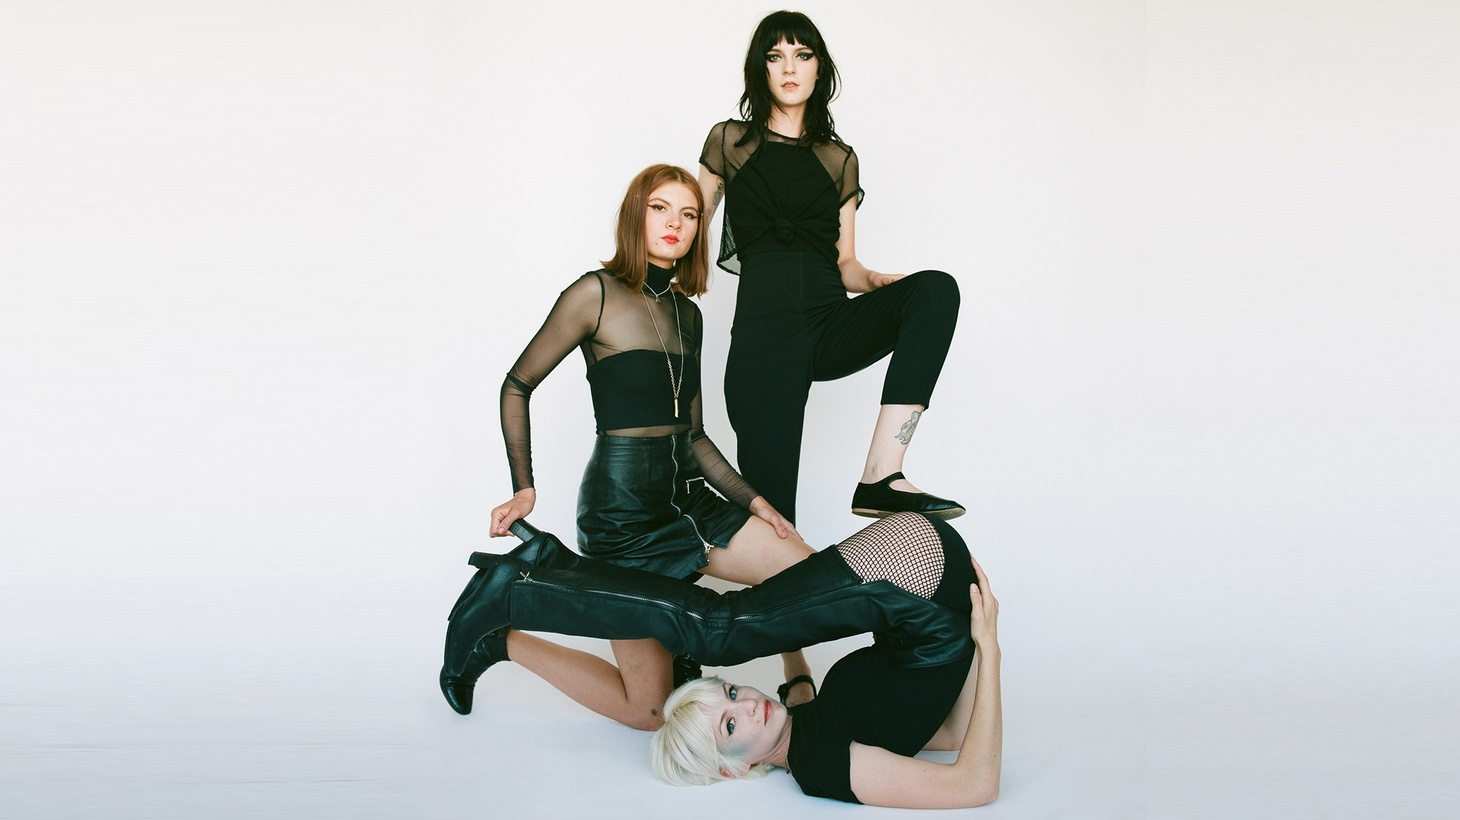 Automatic has landed on many of our DJ's Top Ten lists of 2019. The Los Angeles post-punk trio comprises of Izzy Glaudini, Lola Dompé and Halle Saxson and blew the LA music scene with their debut album Signal.